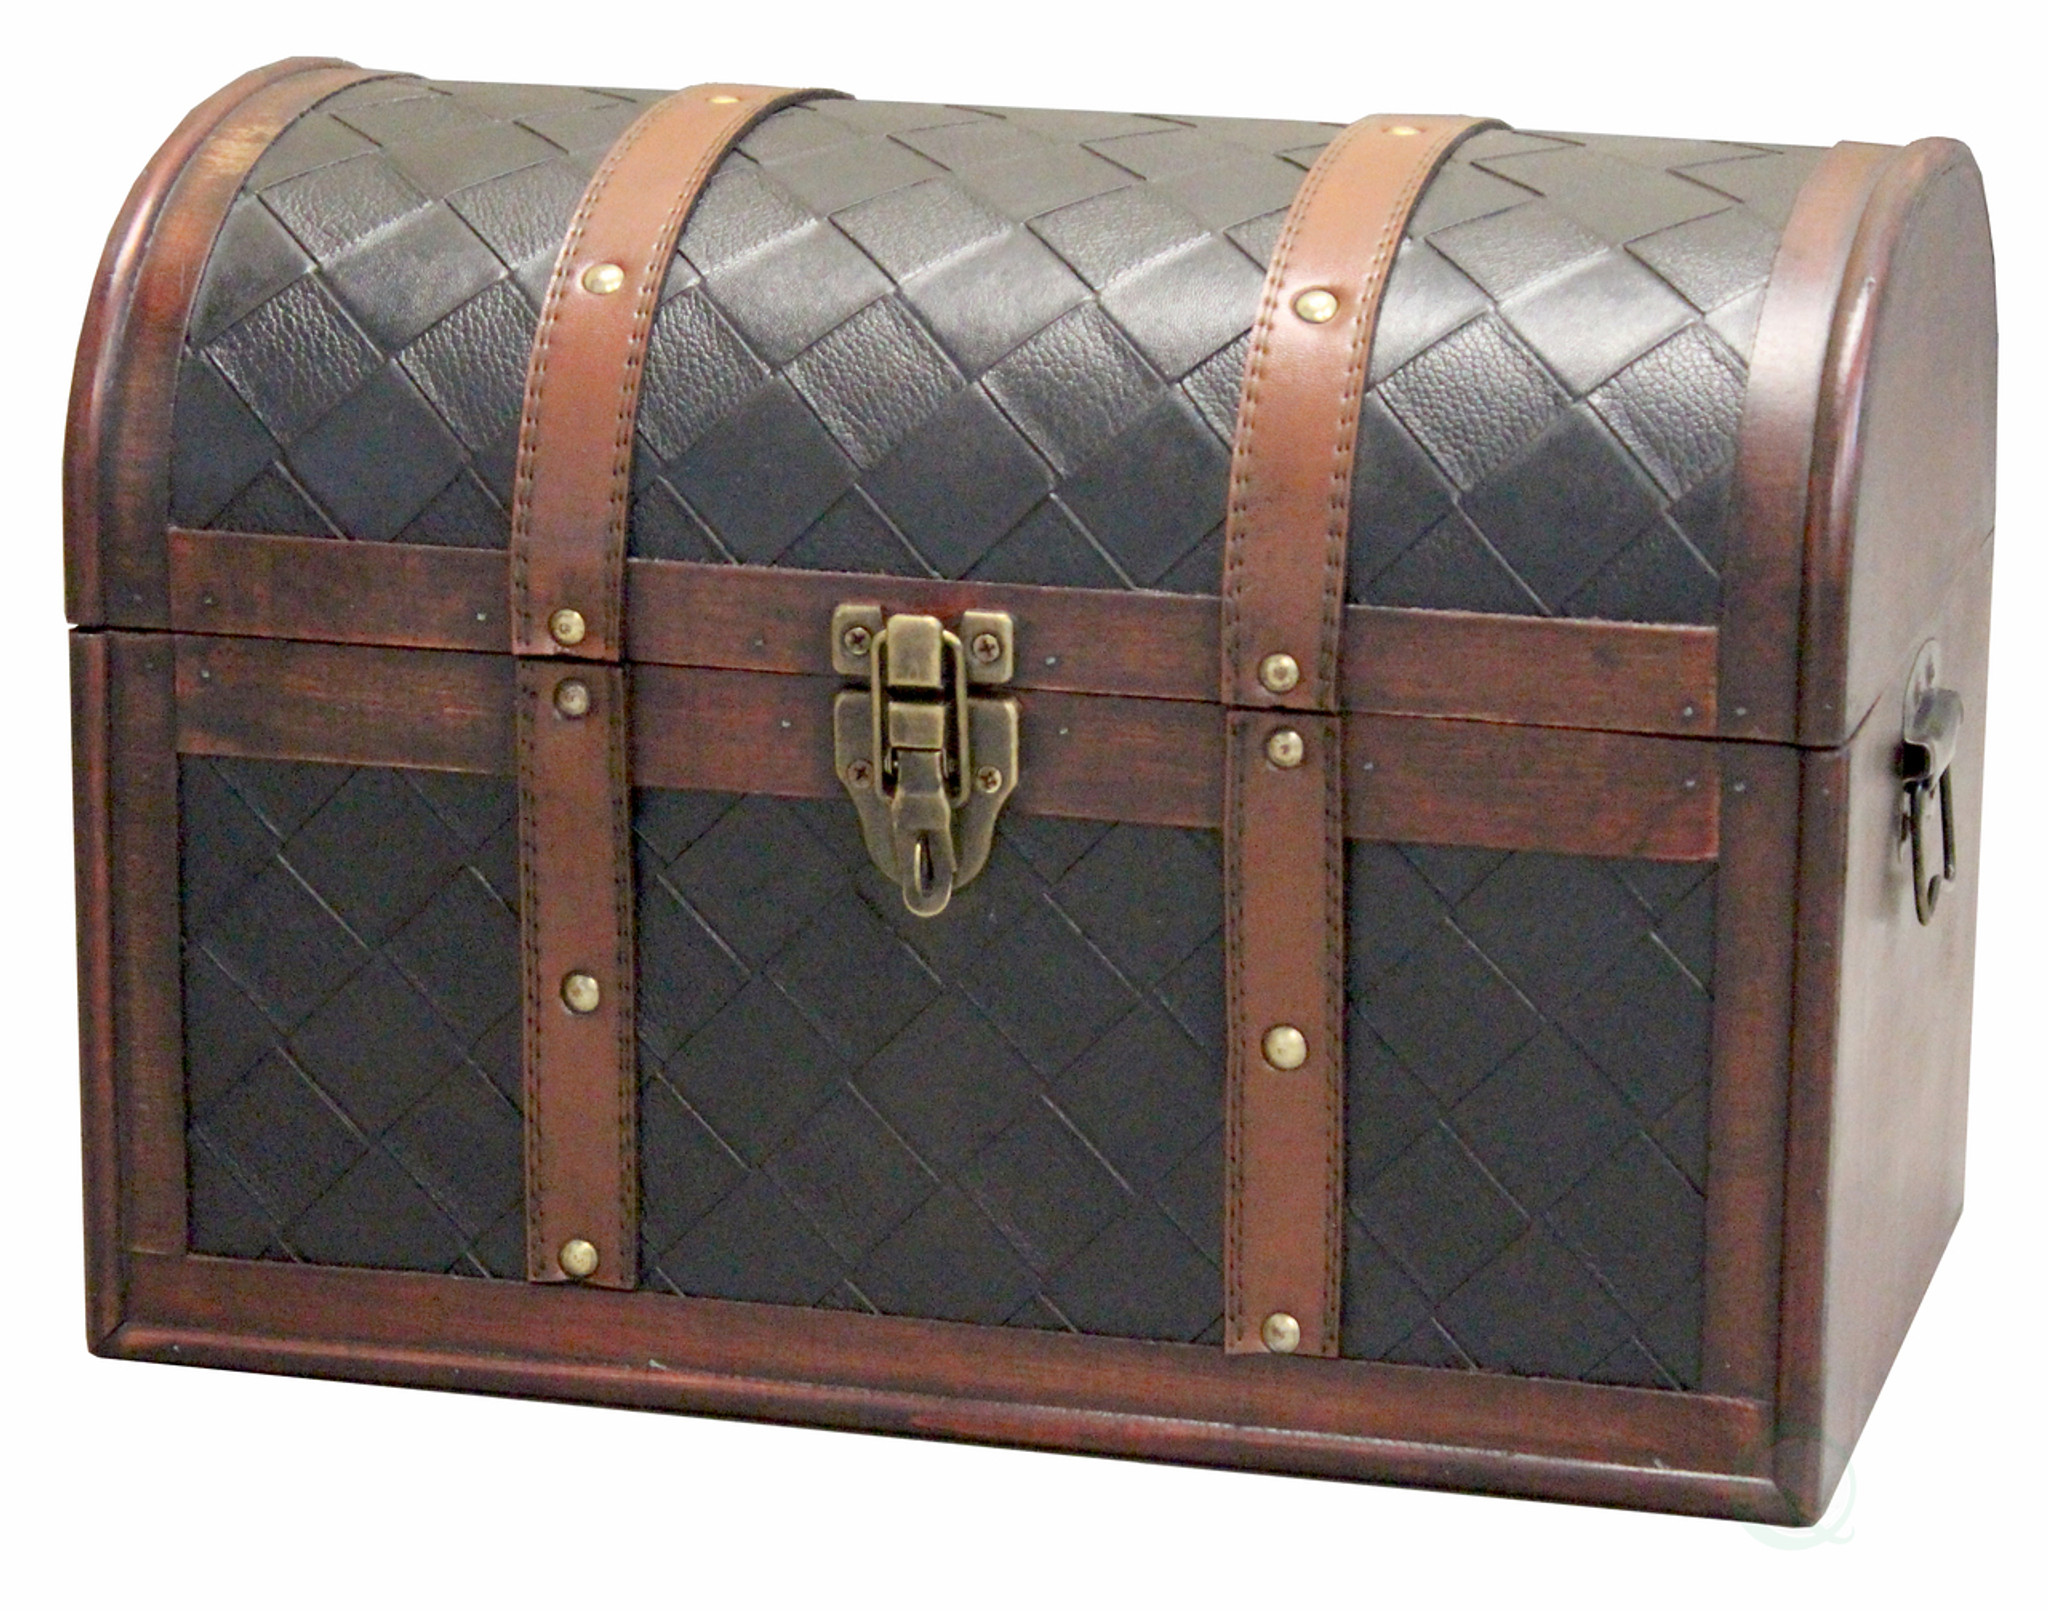 Wooden Leather Round Top Treasure Chest-Decorative storage Trunk with Lockable Latch ...  sc 1 st  Vintiquewise & Wooden Leather Round Top Treasure Chest-Decorative storage Trunk ...